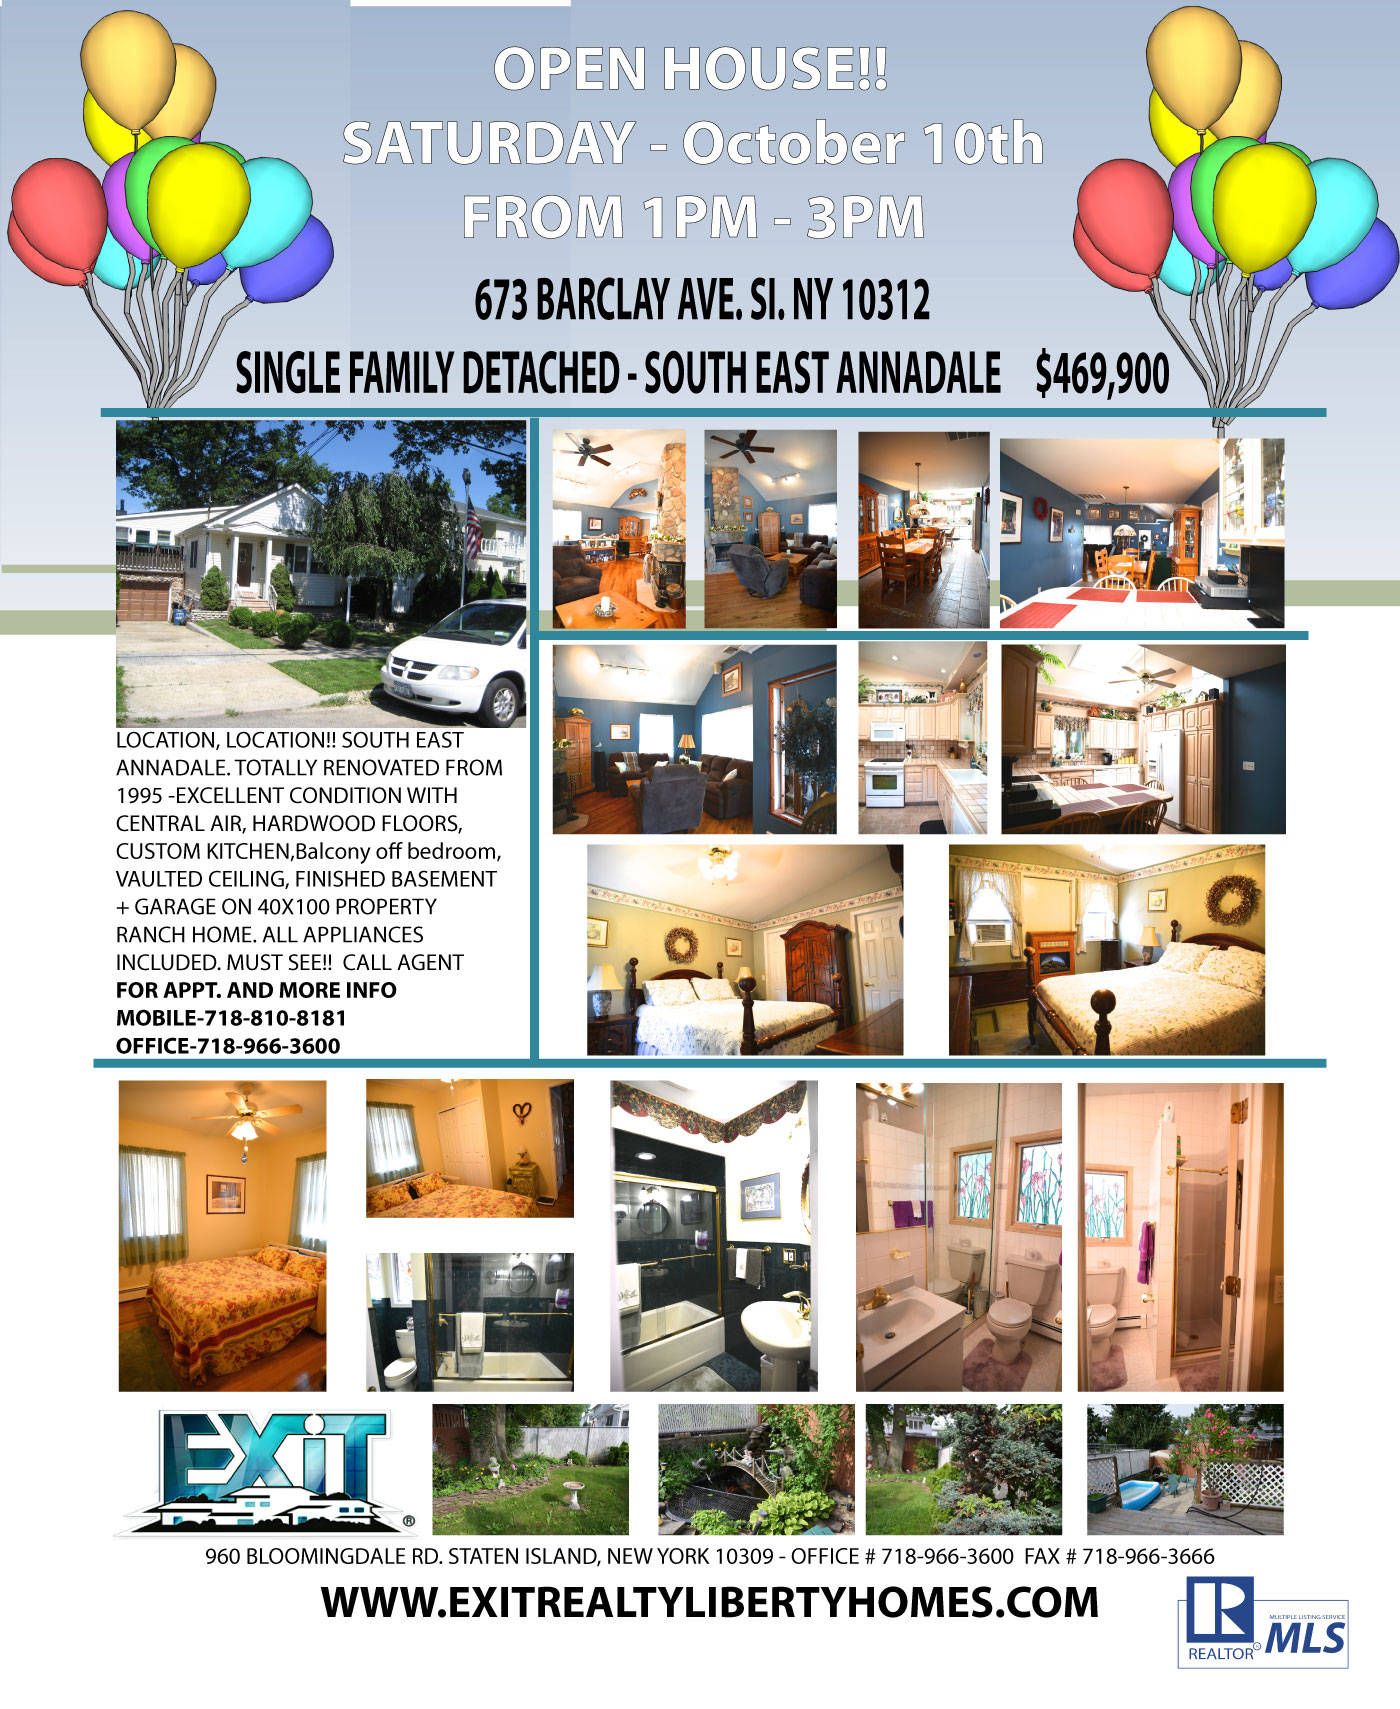 Home for Sale!!  Open House Saturday 1-3